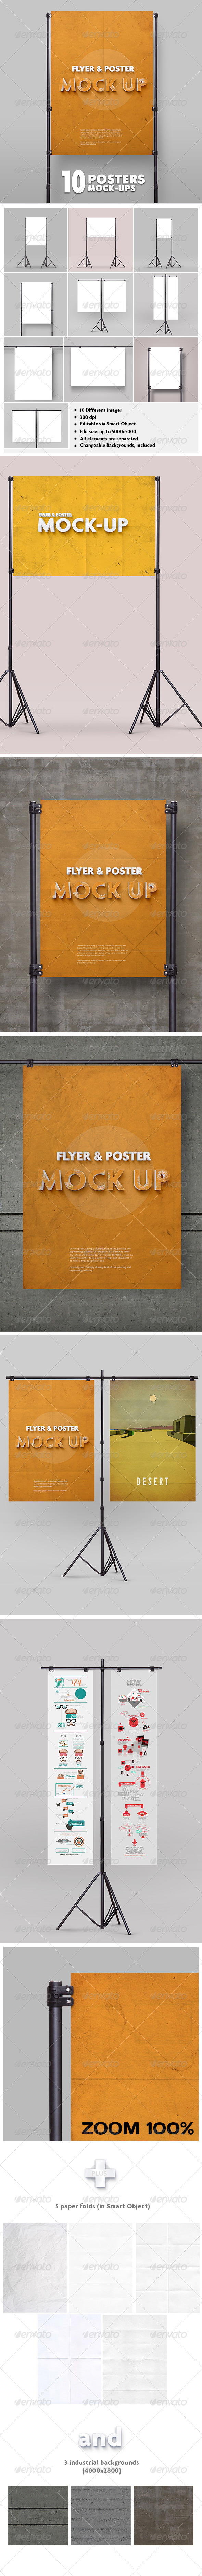 Poster Mockup vol.2 / 10 Different Images - Posters Print